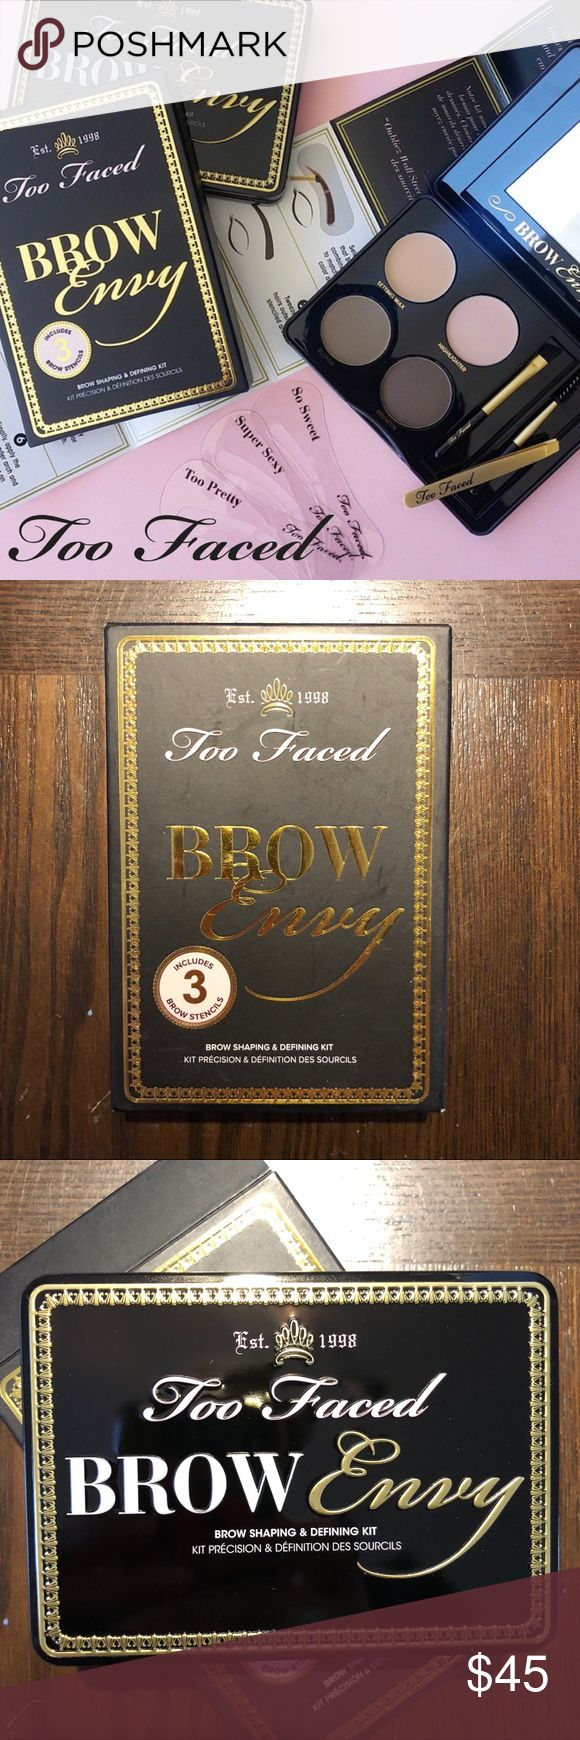 🖤NEW Too Faced BROW ENVY SHAPING & DEFINING KIT 🖤Brand new in original box. Never swatched. Too Faced BROW ENVY SHAPING & DEFINING KIT.   💛Guaranteed authentic, as always. Direct from TF. From my smoke free home.  🖤ABOUT: Fool-proof kit filled with all the essentials you need to have your brows arched, defined and framed like a star! * Mix shades for a custom brow color * Professional slanted tip tweezers grab the finest hair * 3 unique stencils * Angled brush and brow comb for flawless…